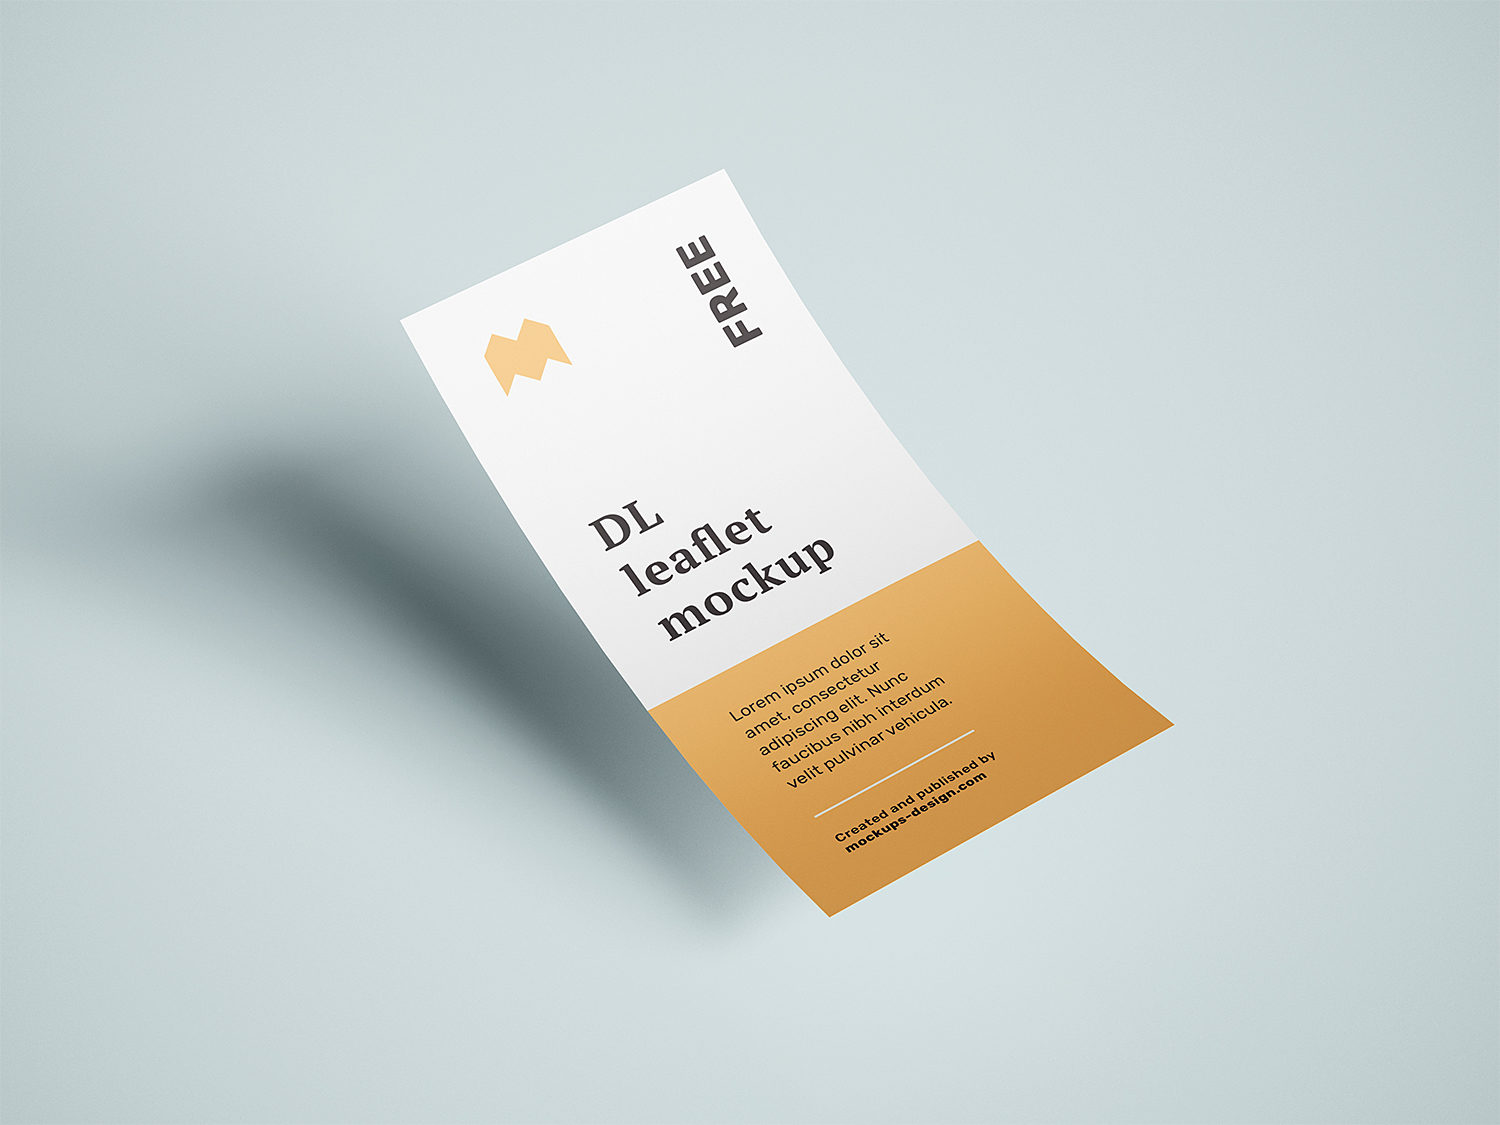 Free Flying DL Leaflets Mockup